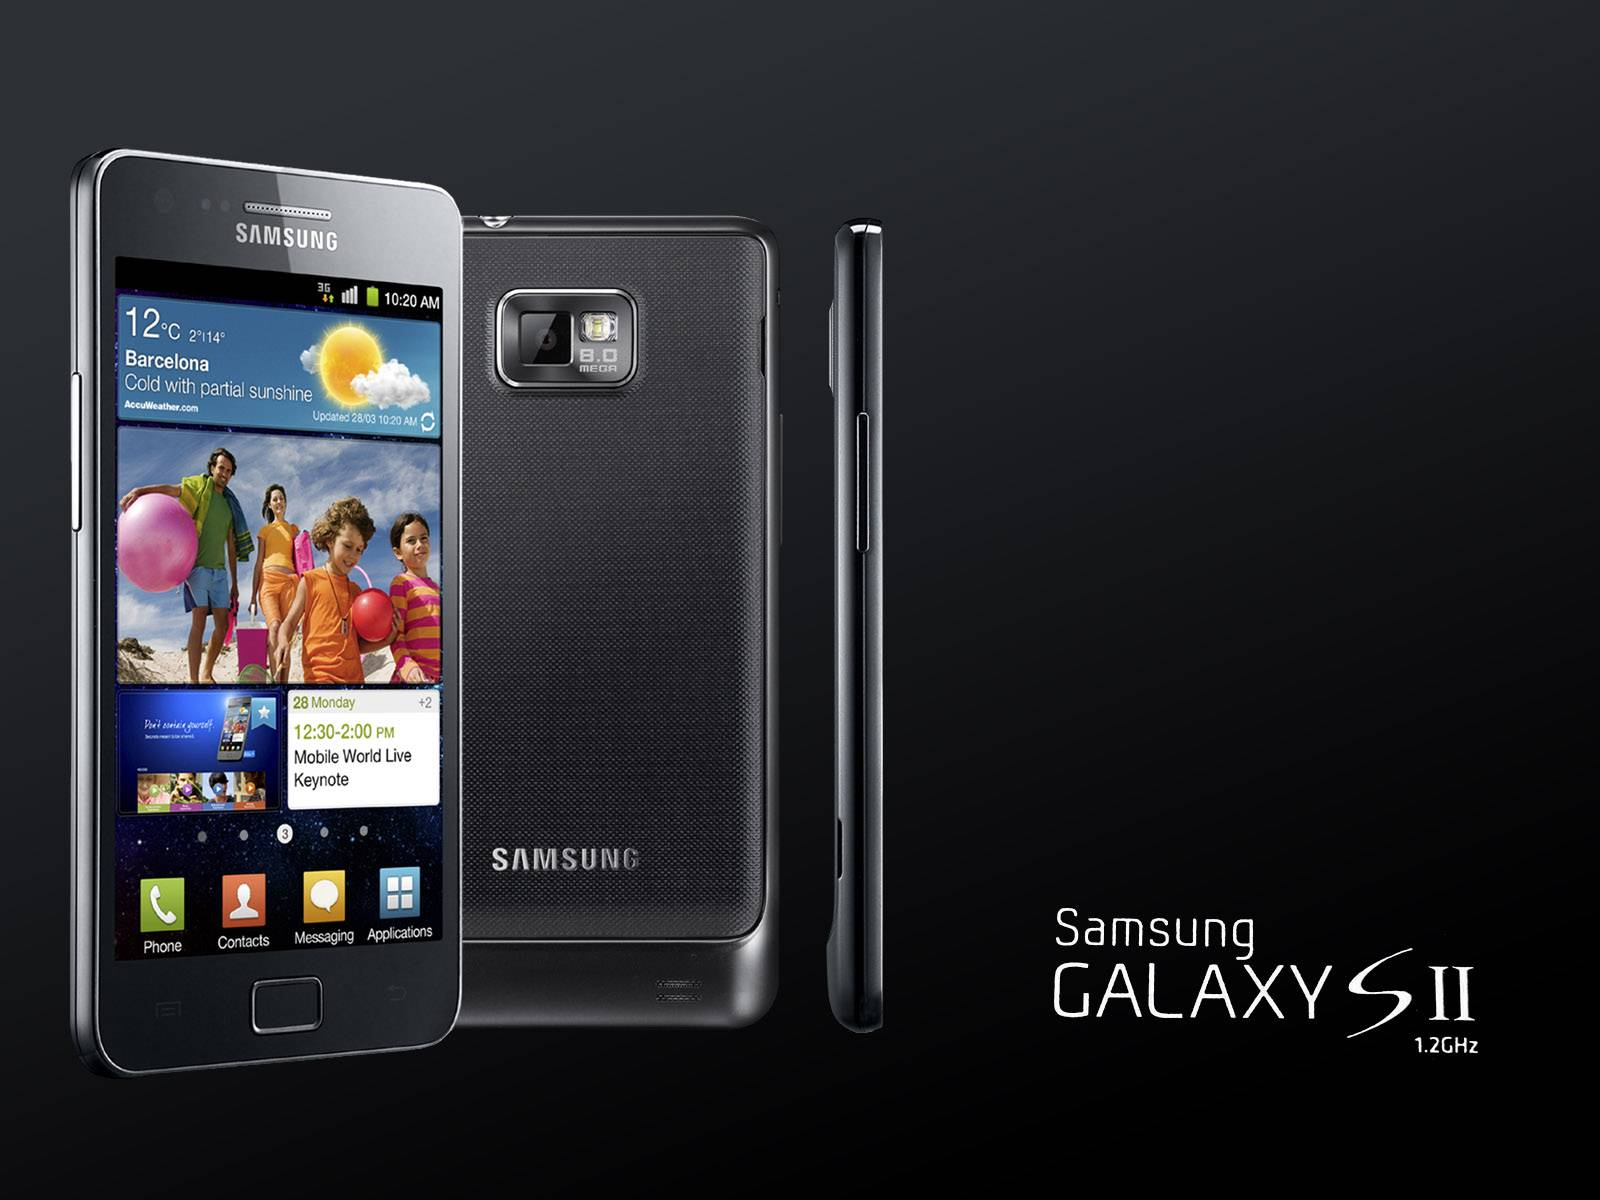 The Samsung Galaxy S2 lives on with CM13 nightly builds - Android